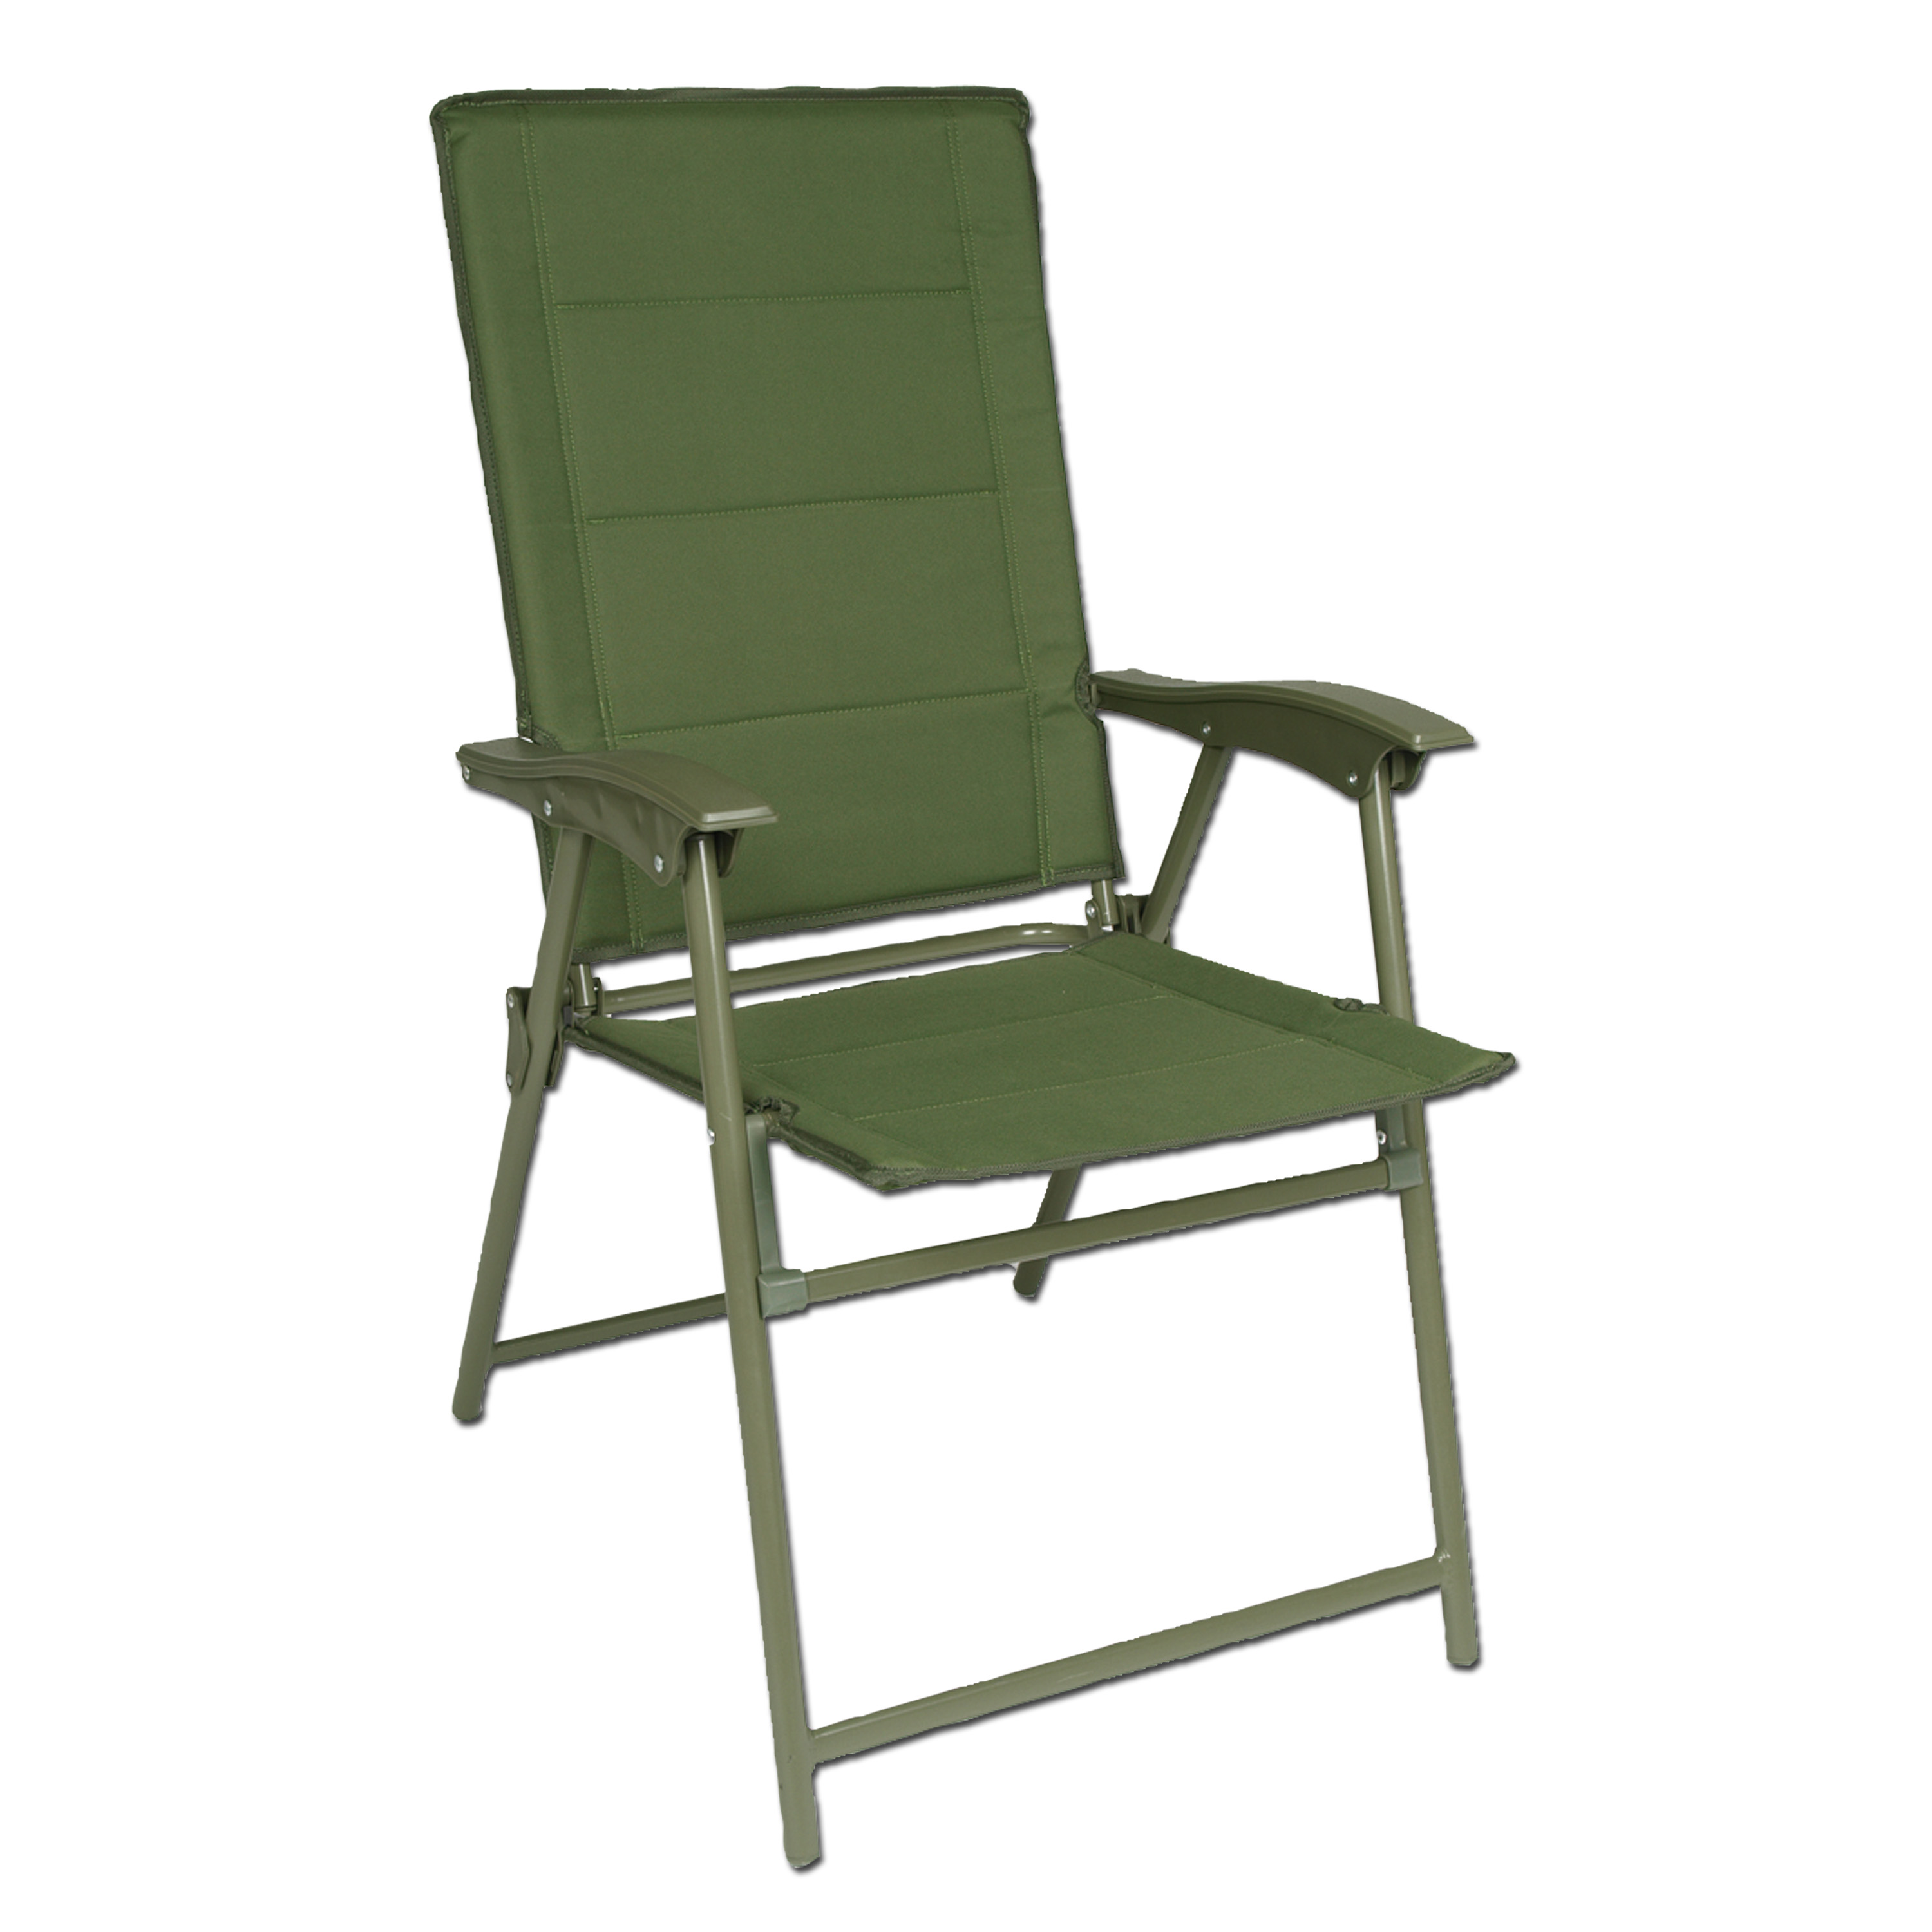 Chaise pliante Army avec accoudoirs olive